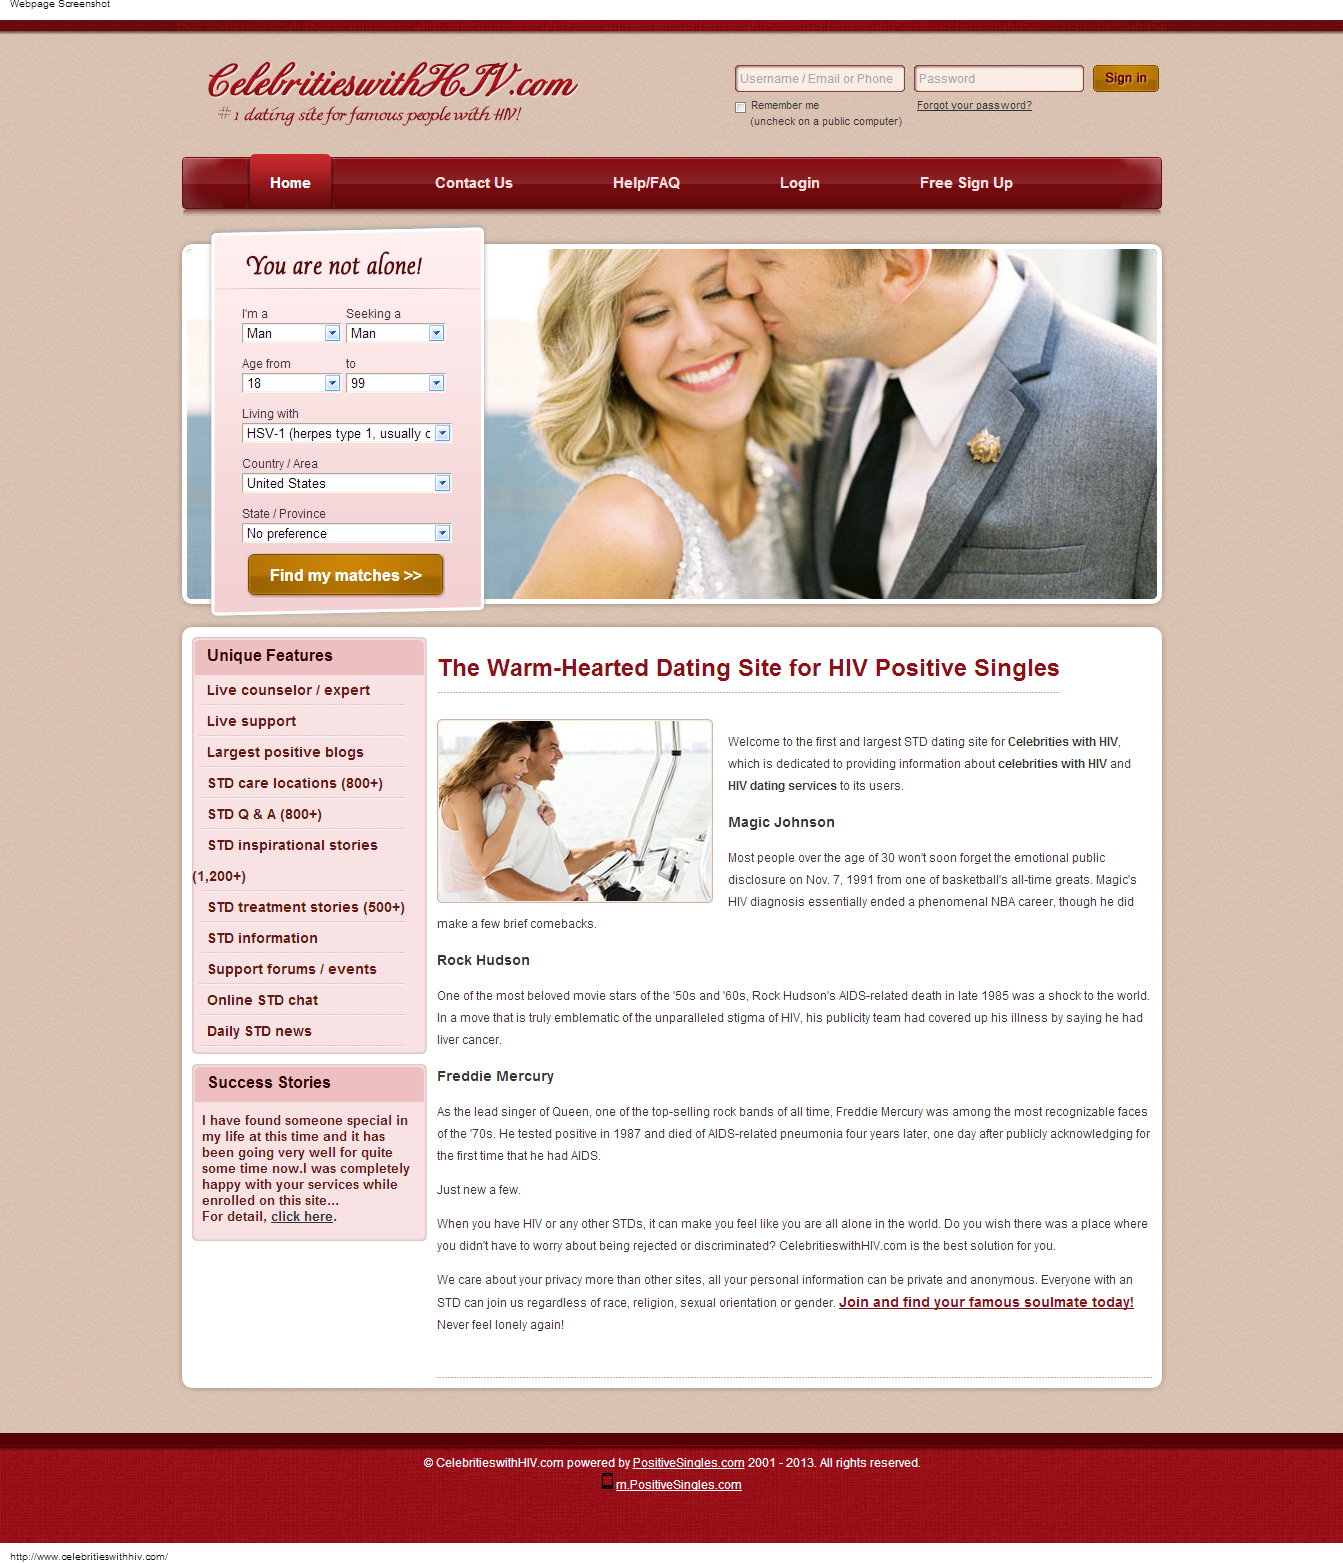 HOW TO CHOOSE THR RIGHT HERPES DATING SITE